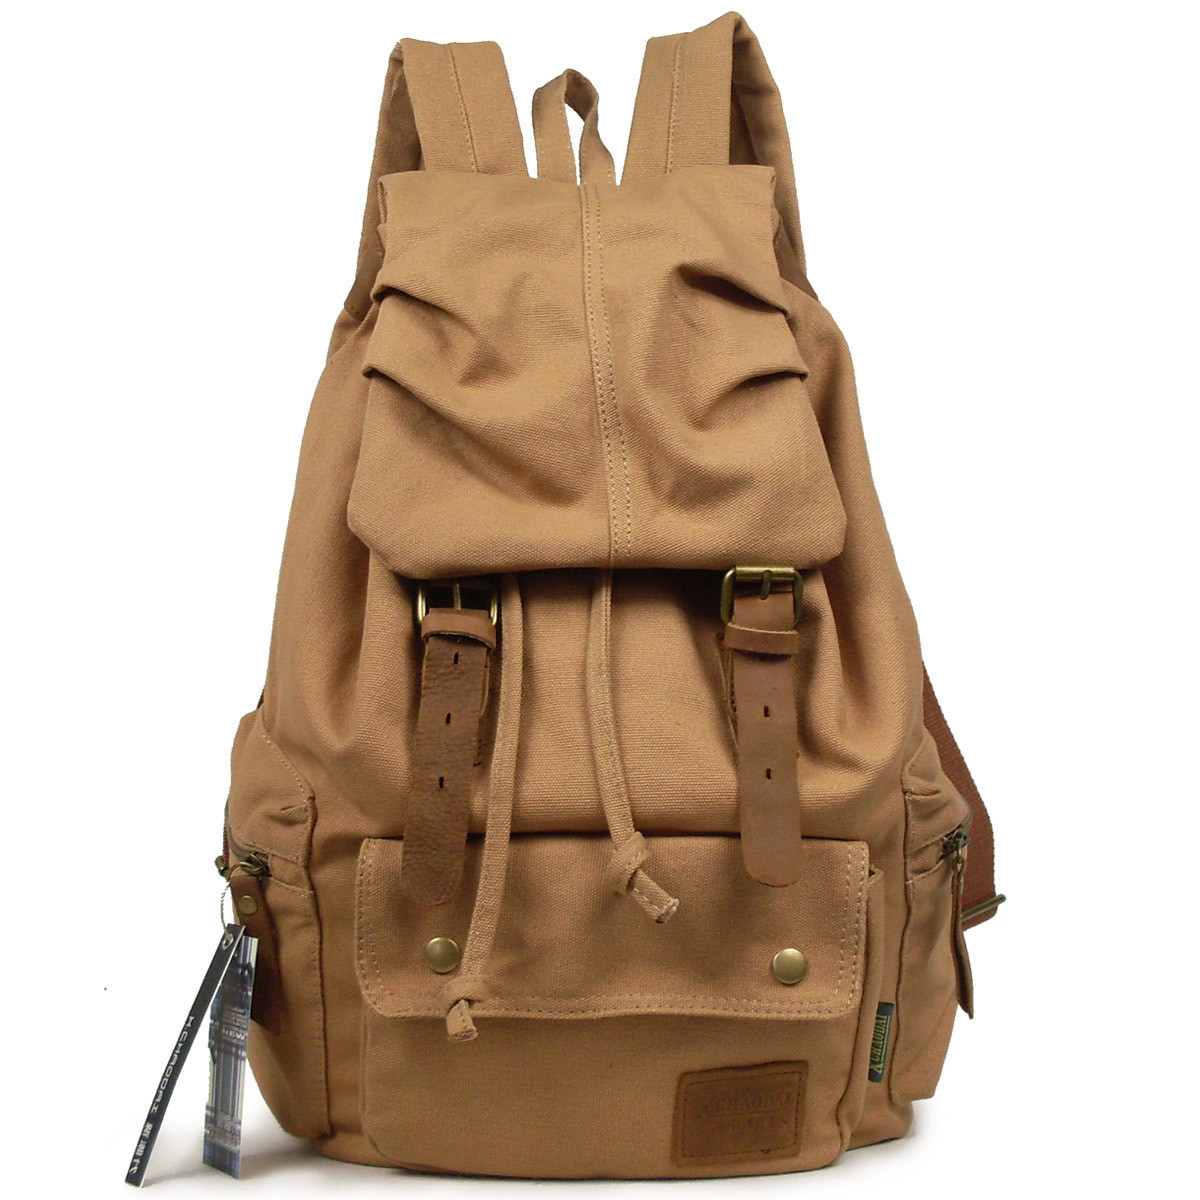 2014 Hot Sale Backpack,Picnic Bag,Sport Backpack